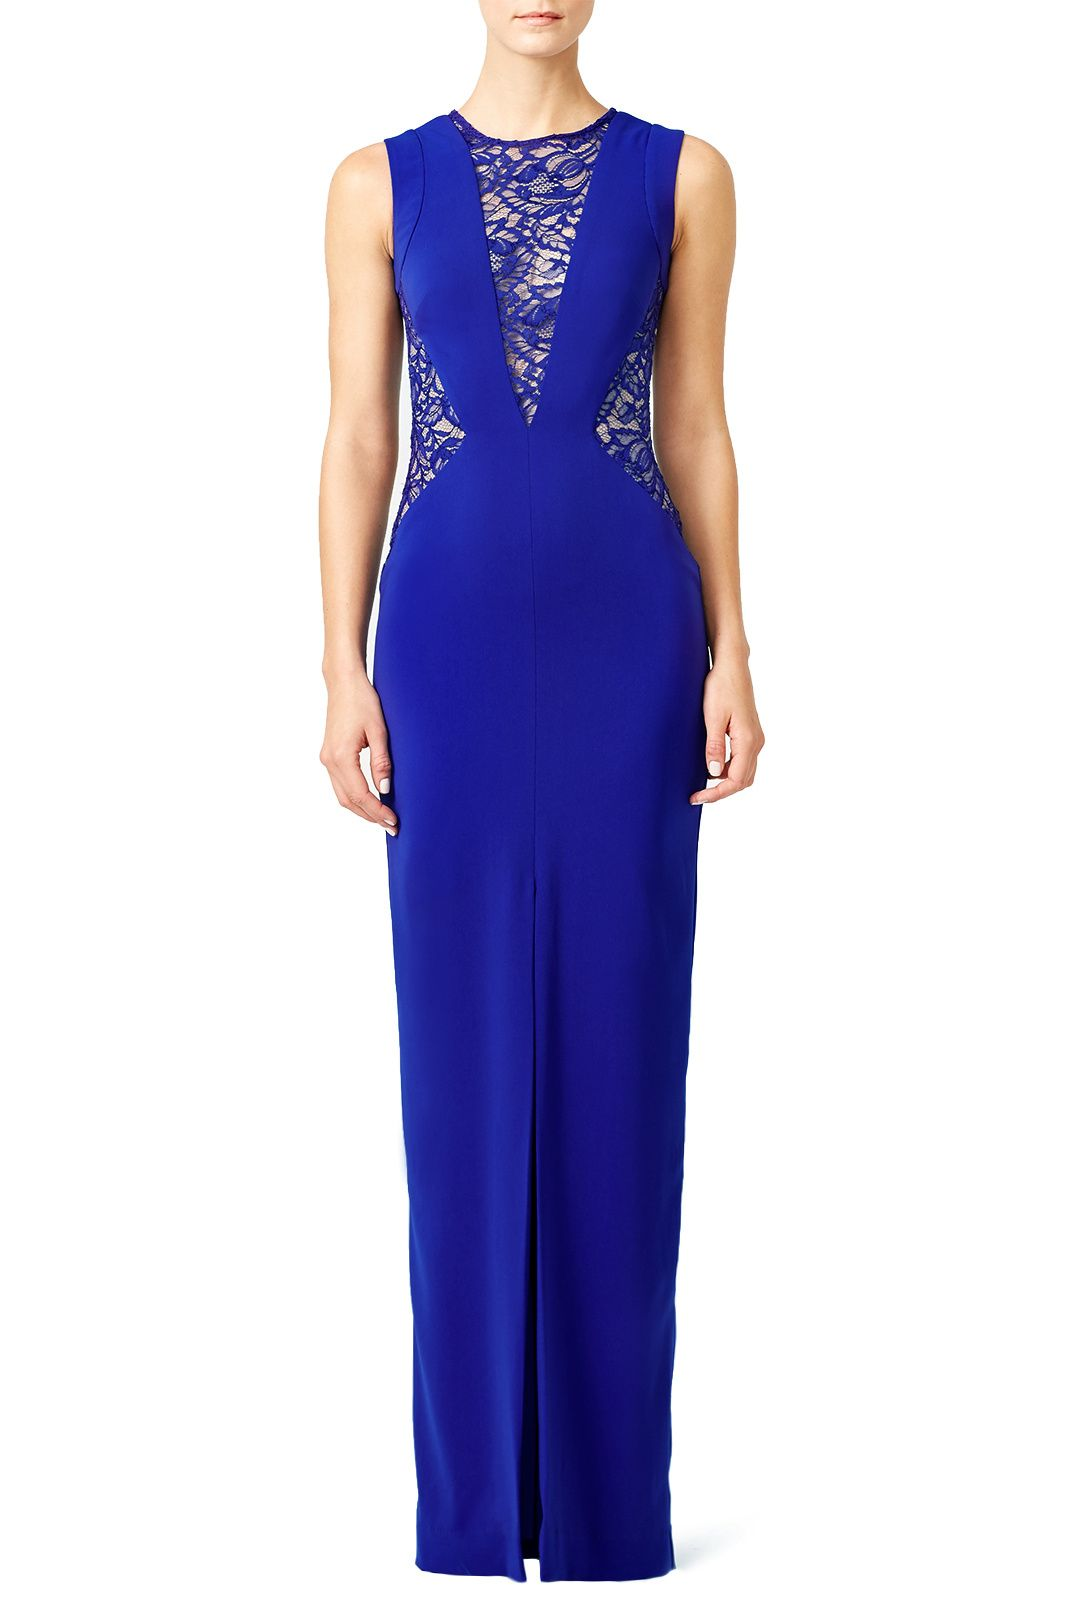 Rent Blue Lace Crepe Gown by Nicole Miller for $90 only at Rent the ...